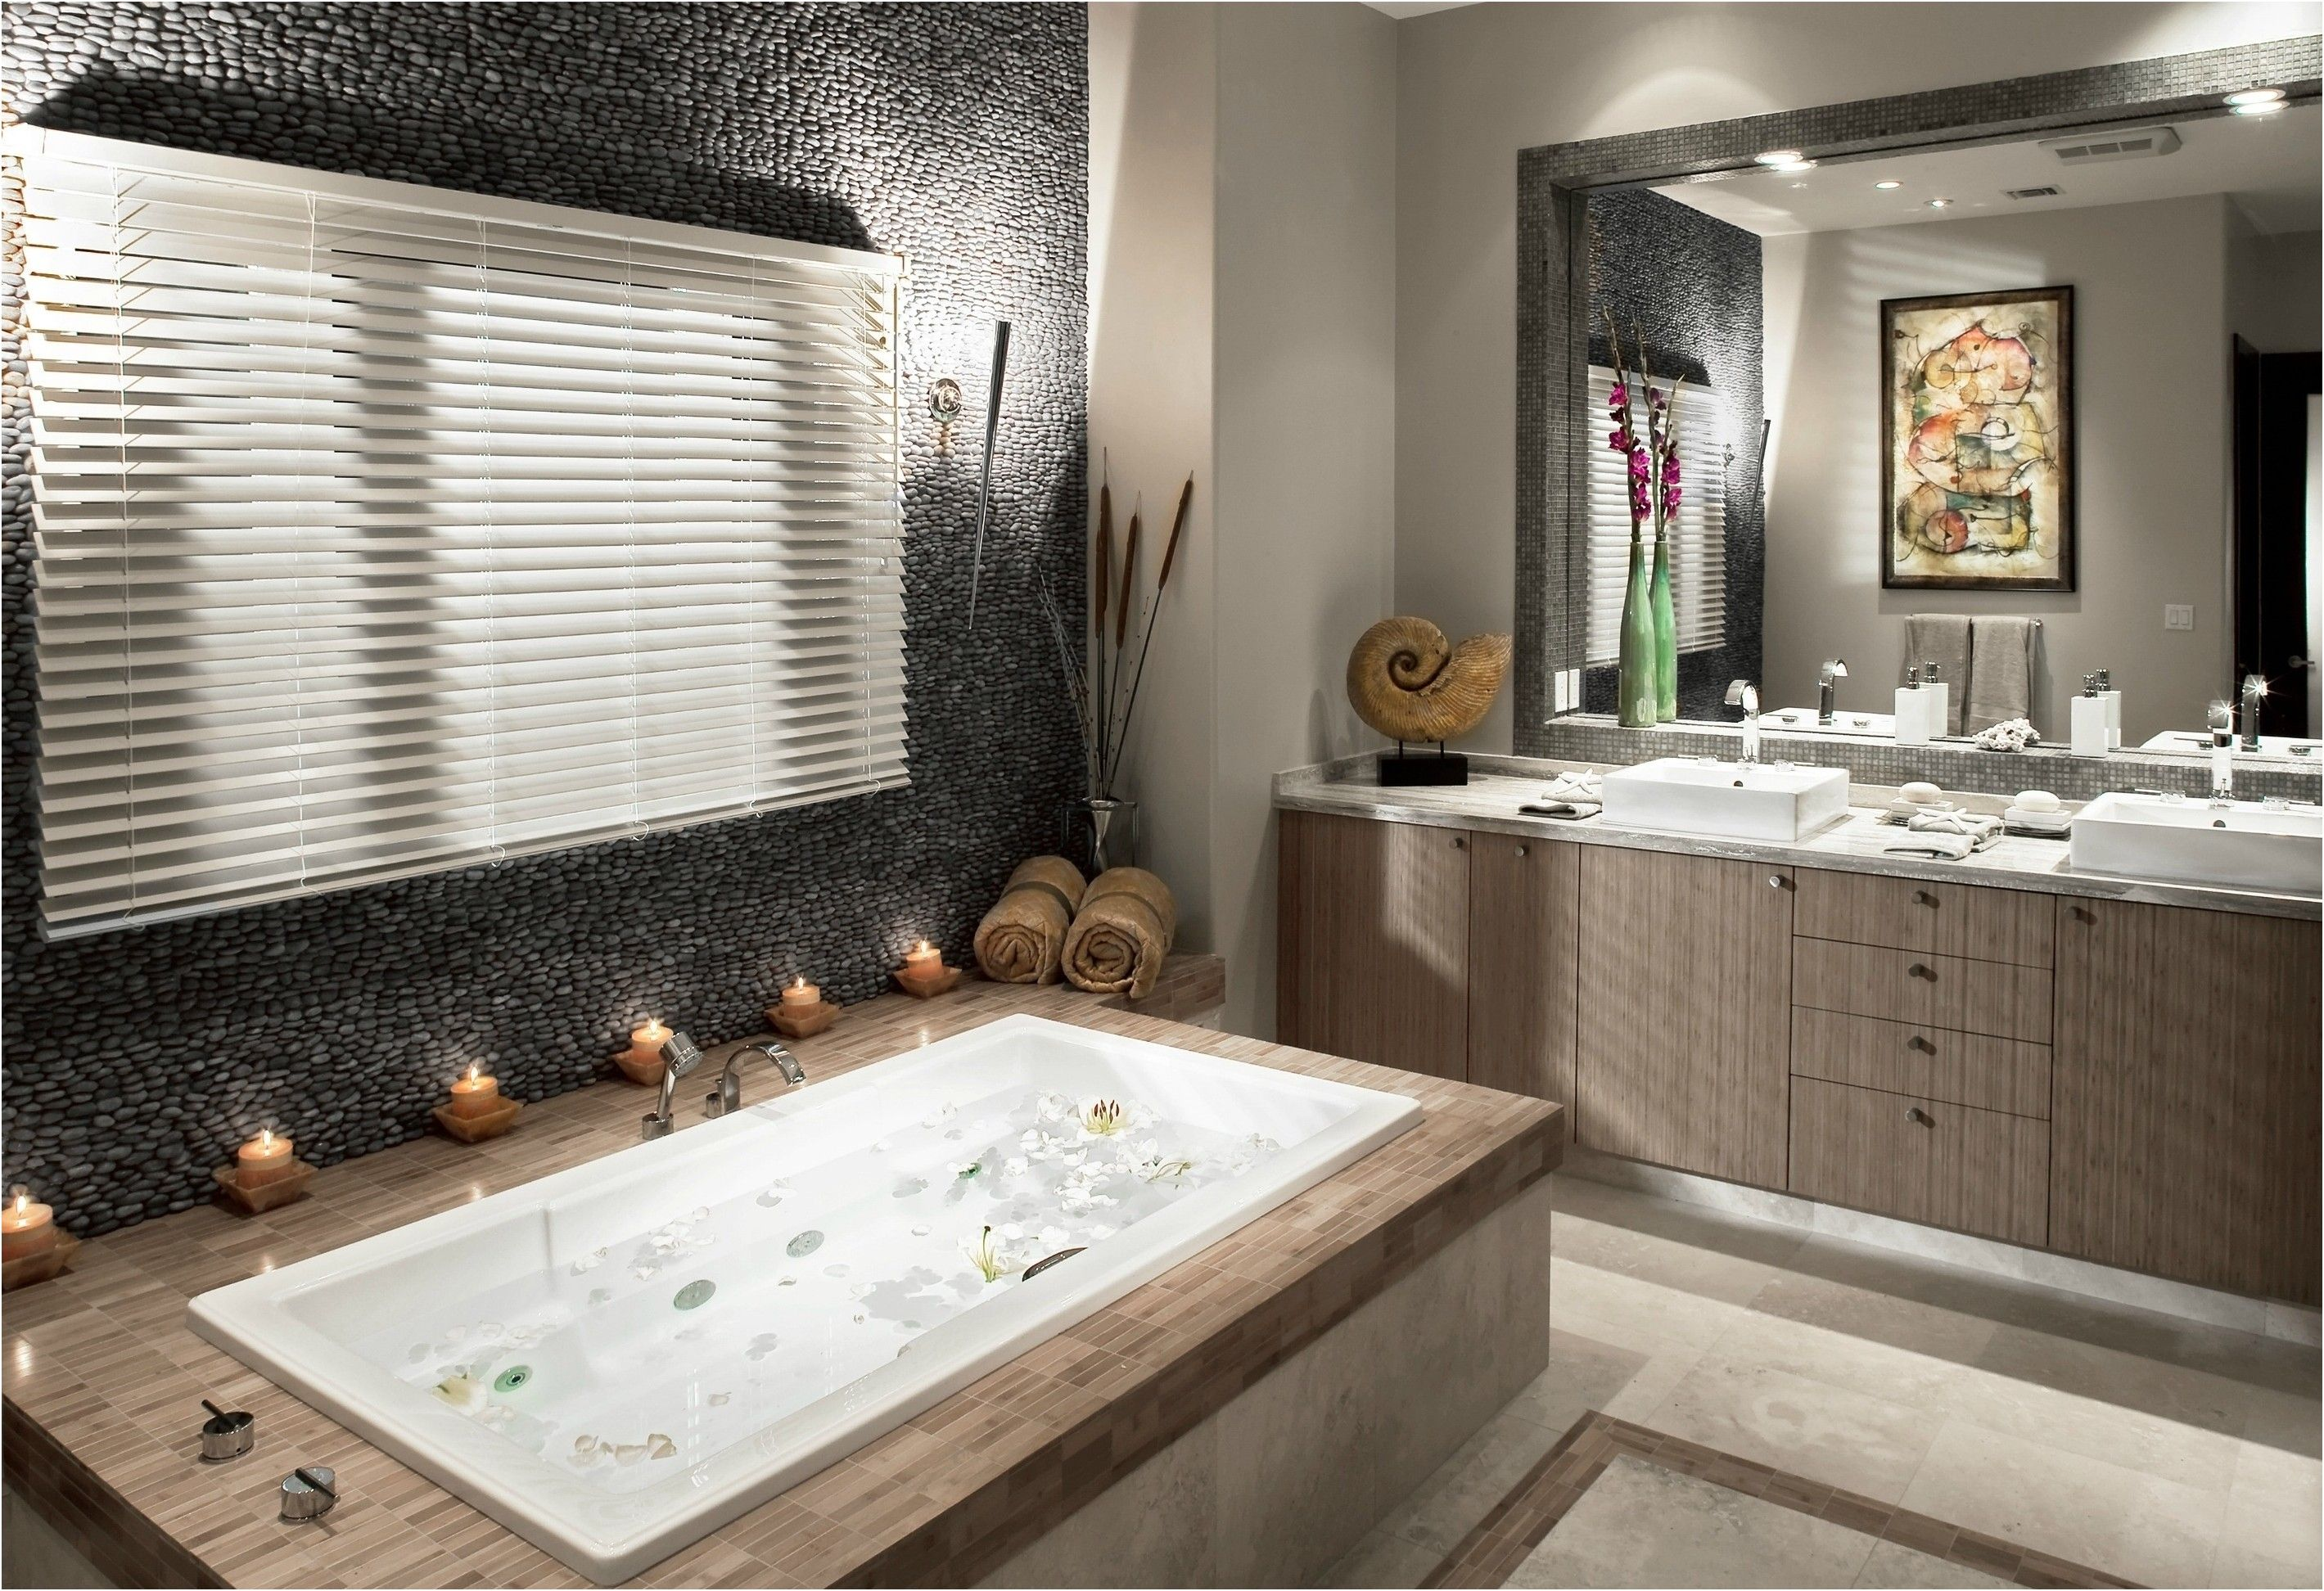 Bathroom Designers Entrancing Virtual Bathroom Design Tool Free Tomthetrader With Photo Of From Decorating Design